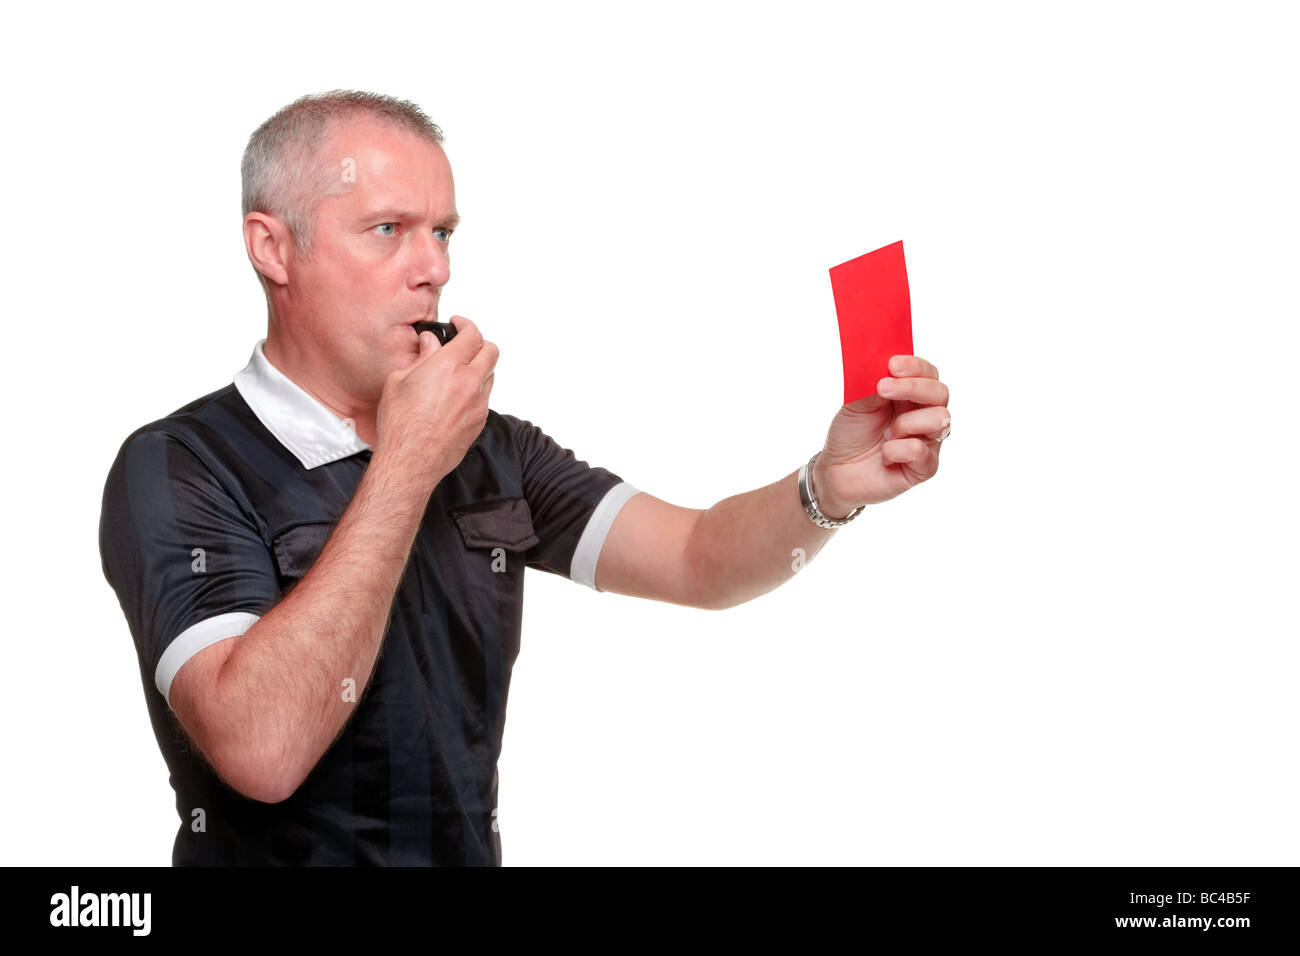 Side profile of a referee showing the red card isolated on a white background - Stock Image